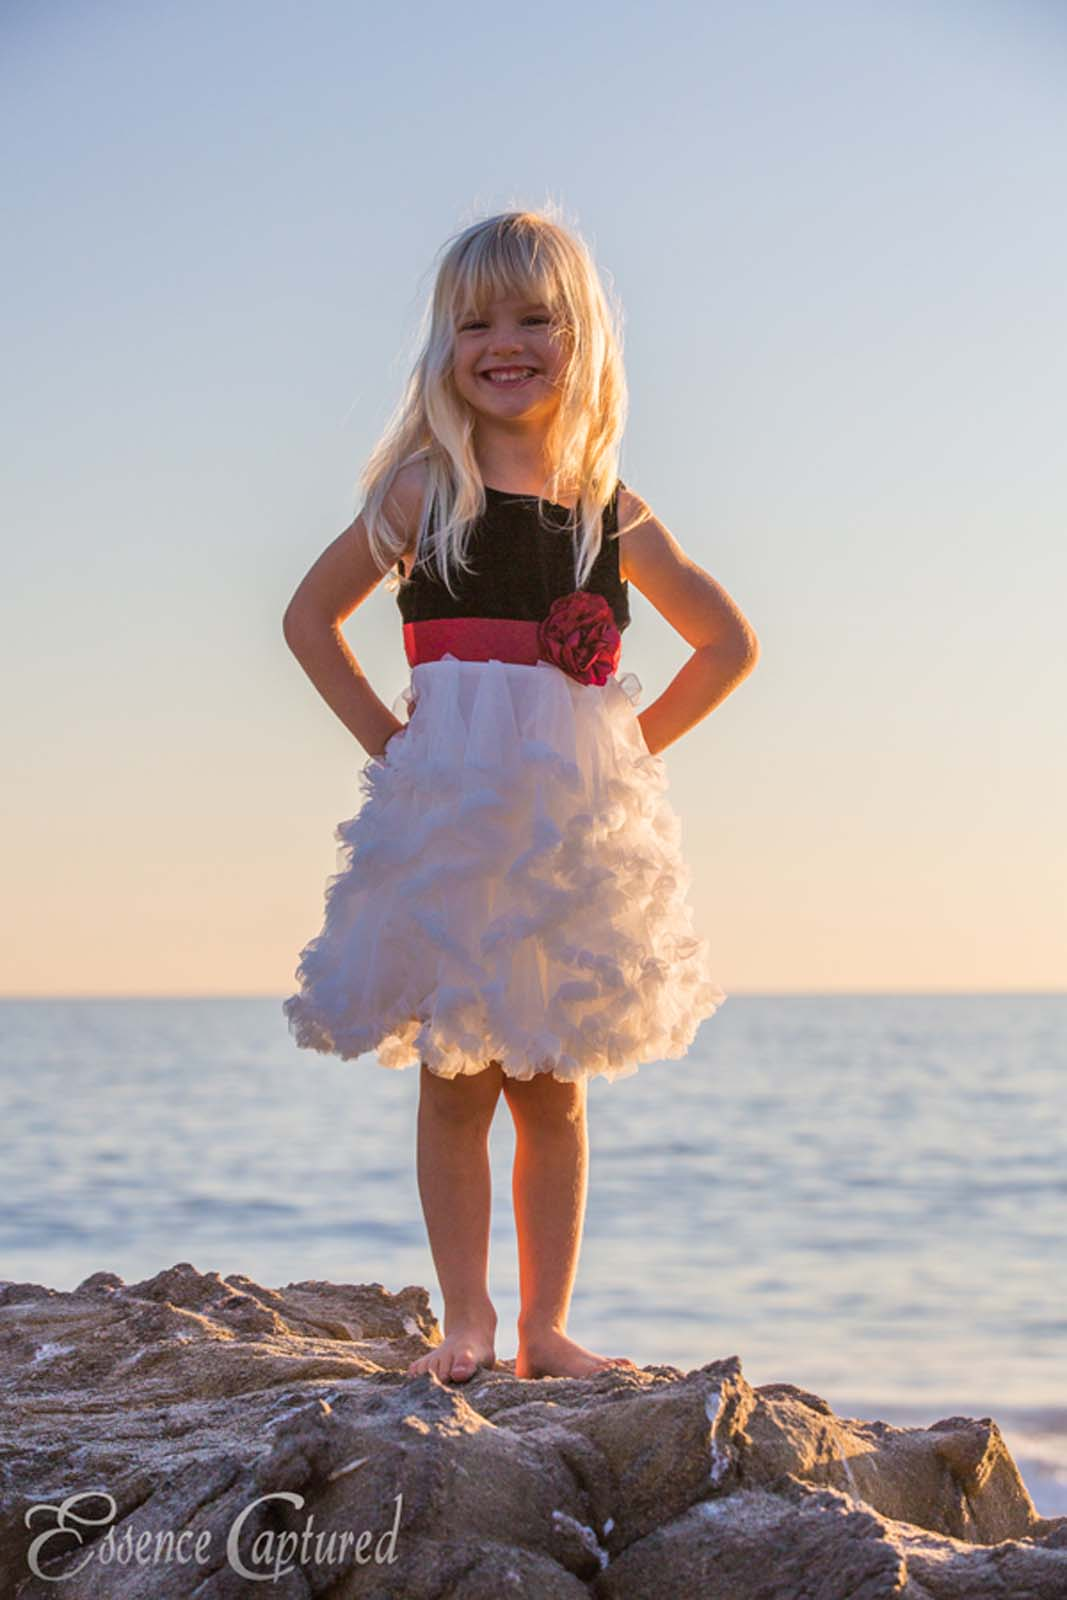 young girl blonde hair fancy dress on rock at beach sunset ocean